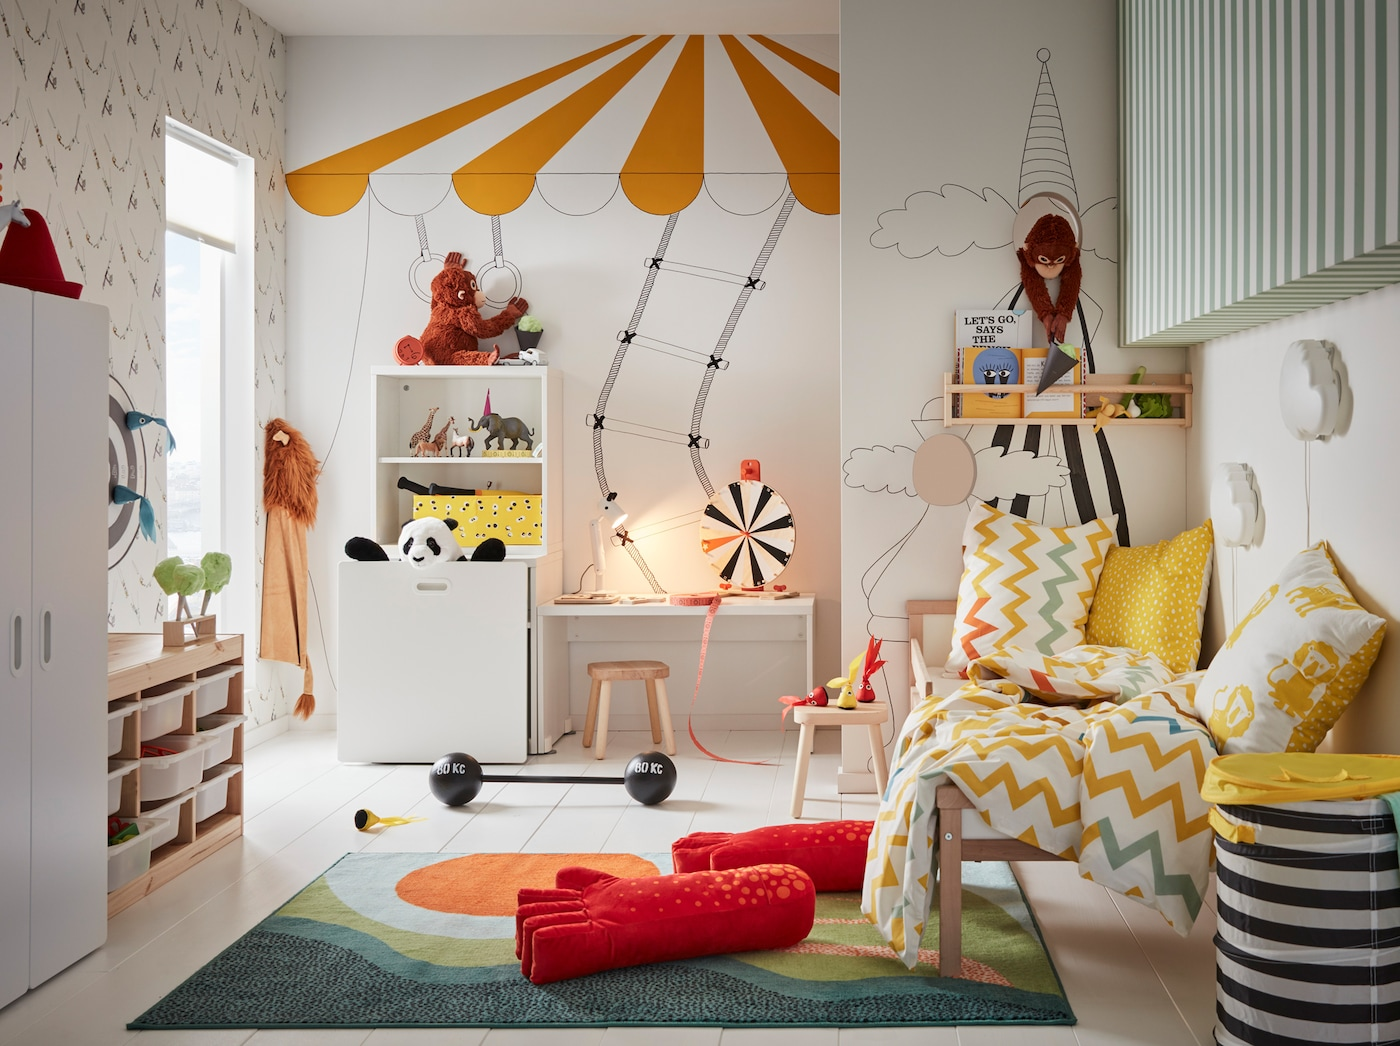 IKEA LUSTIG toy series and boardgames in a circus-themed children's bedroom.